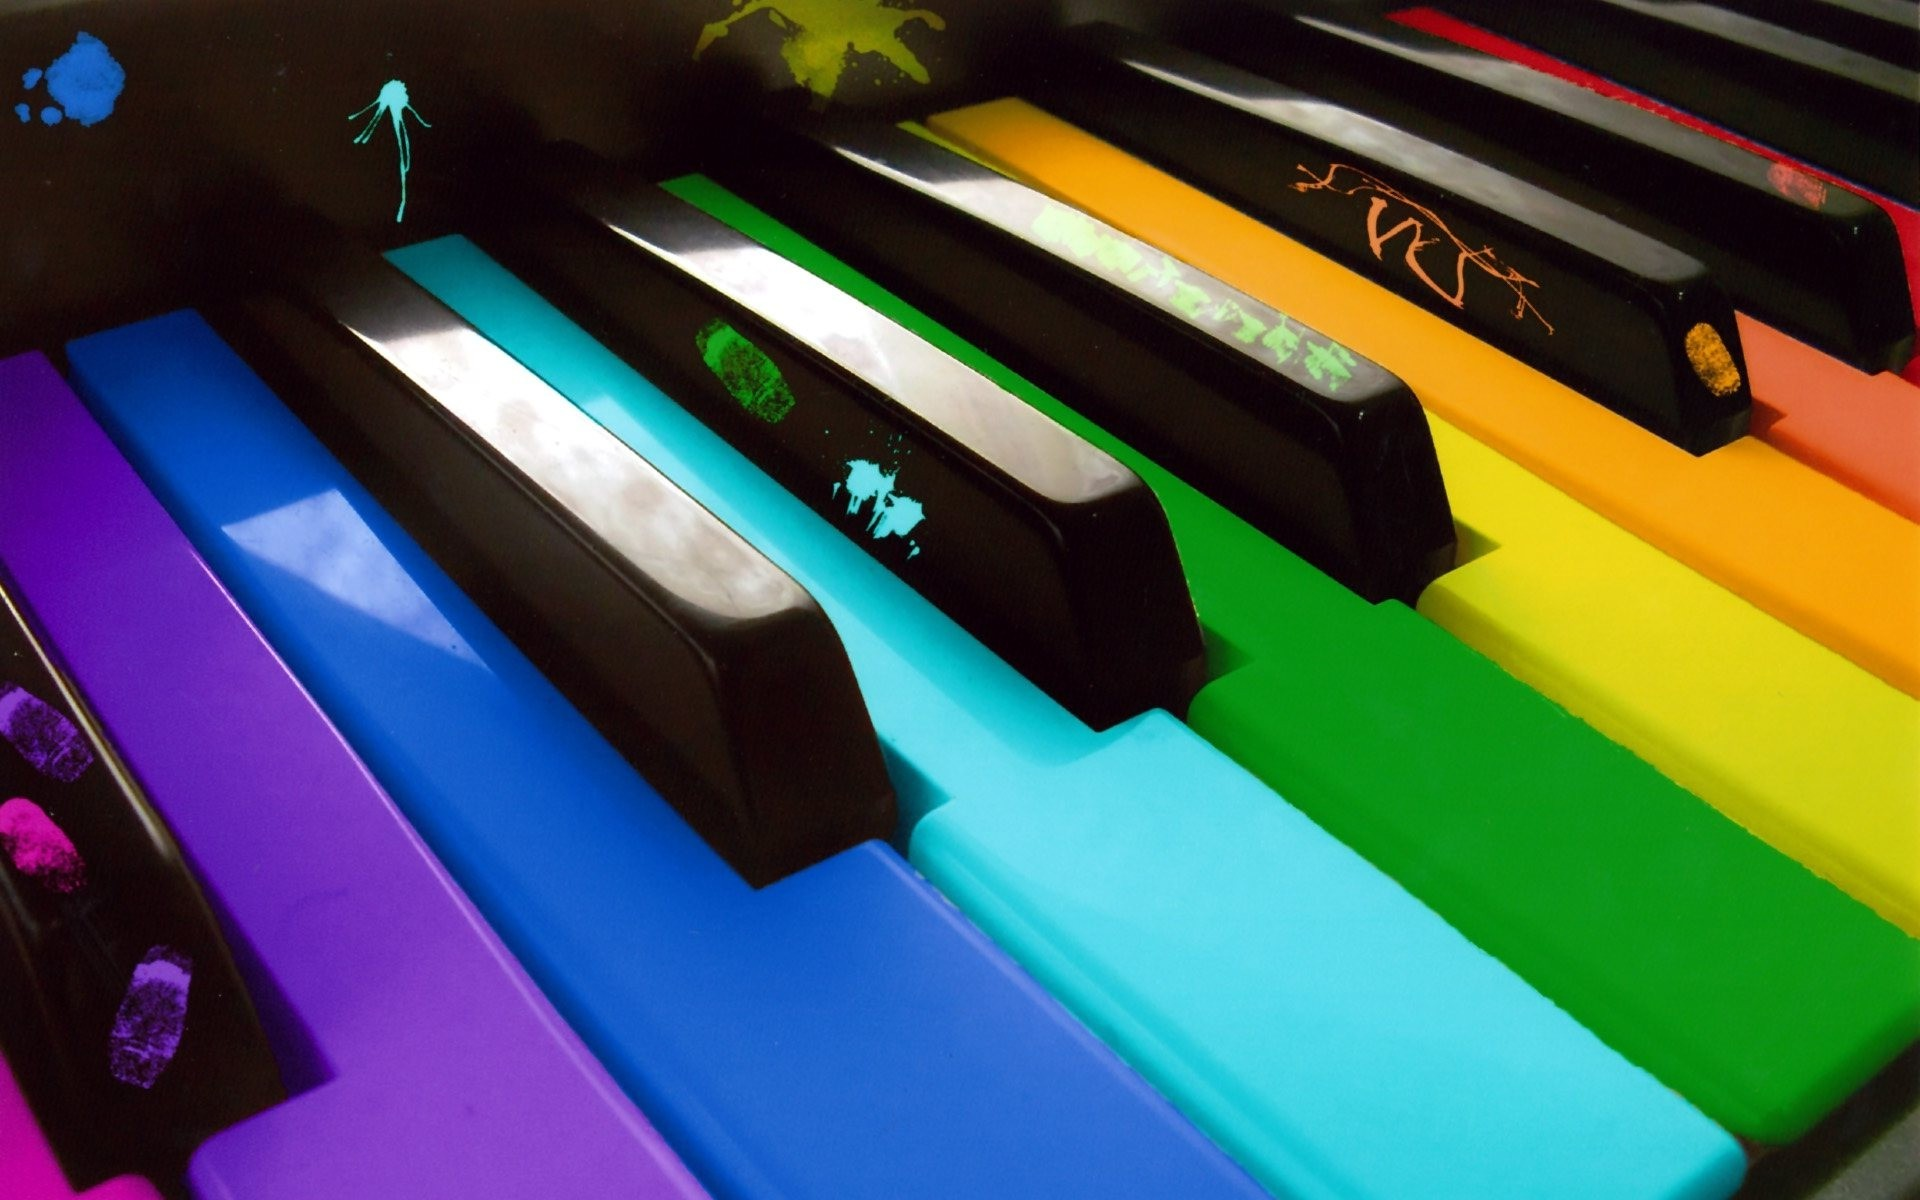 Free Download Colorful Piano Keyboard Hd Wallpaper 1920x1080 Colorful Piano Keyboard 1920x1200 For Your Desktop Mobile Tablet Explore 73 Music Keyboard Wallpaper Piano Keys Wallpaper Piano Wallpapers For Desktop